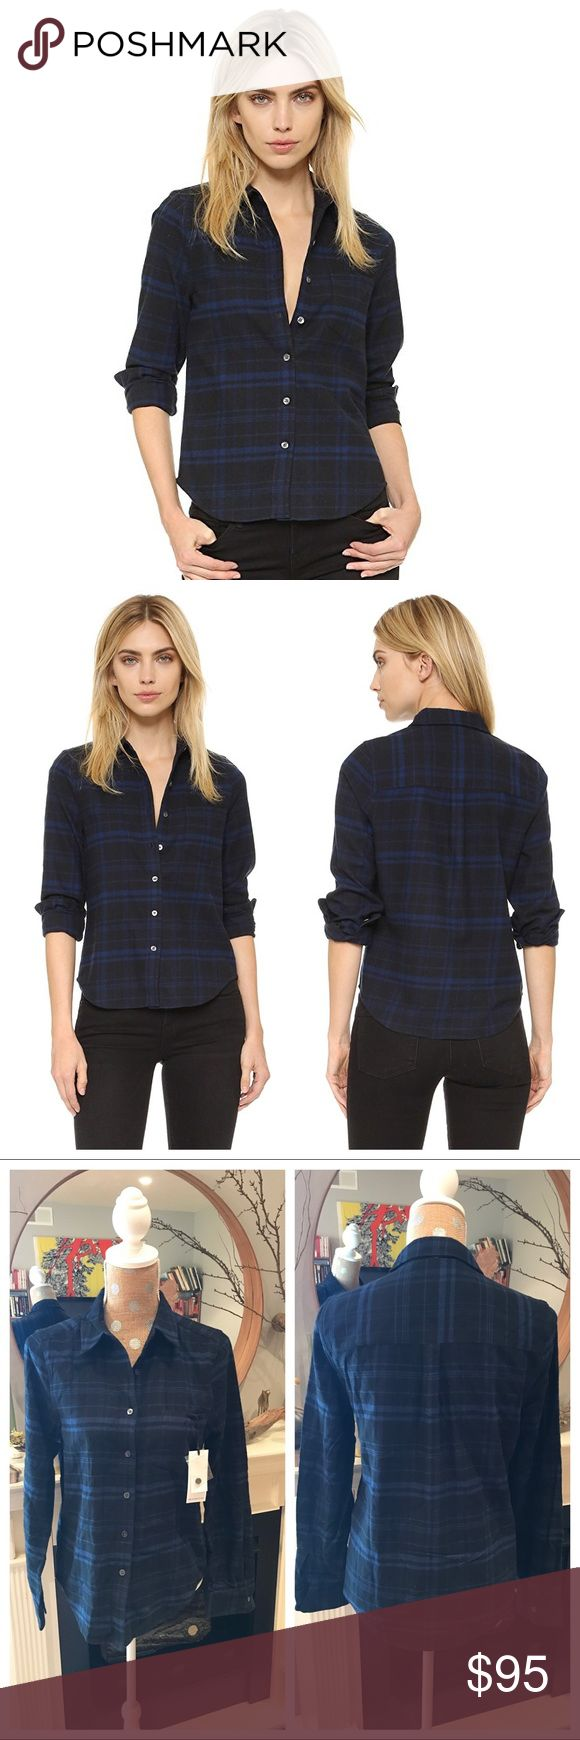 """Kate Moss Equipment London Plaid Flannel Shirt From Equipment's capsule collection by Kate Moss, a long-sleeve shirt brings a flashback to '90s grunge in soft plaid flannel. A borrowed-from-the-boys Kate Moss x Equipment button-down in plaid flannel. Fold-over collar and button placket. Patch front pocket. Long sleeves and button cuffs.  •26"""" length (size Medium).  •Front button closure.  •Point collar.  •Long sleeves with button cuffs.  •Curved hem.  •100% cotton.  •Chest pocket…"""